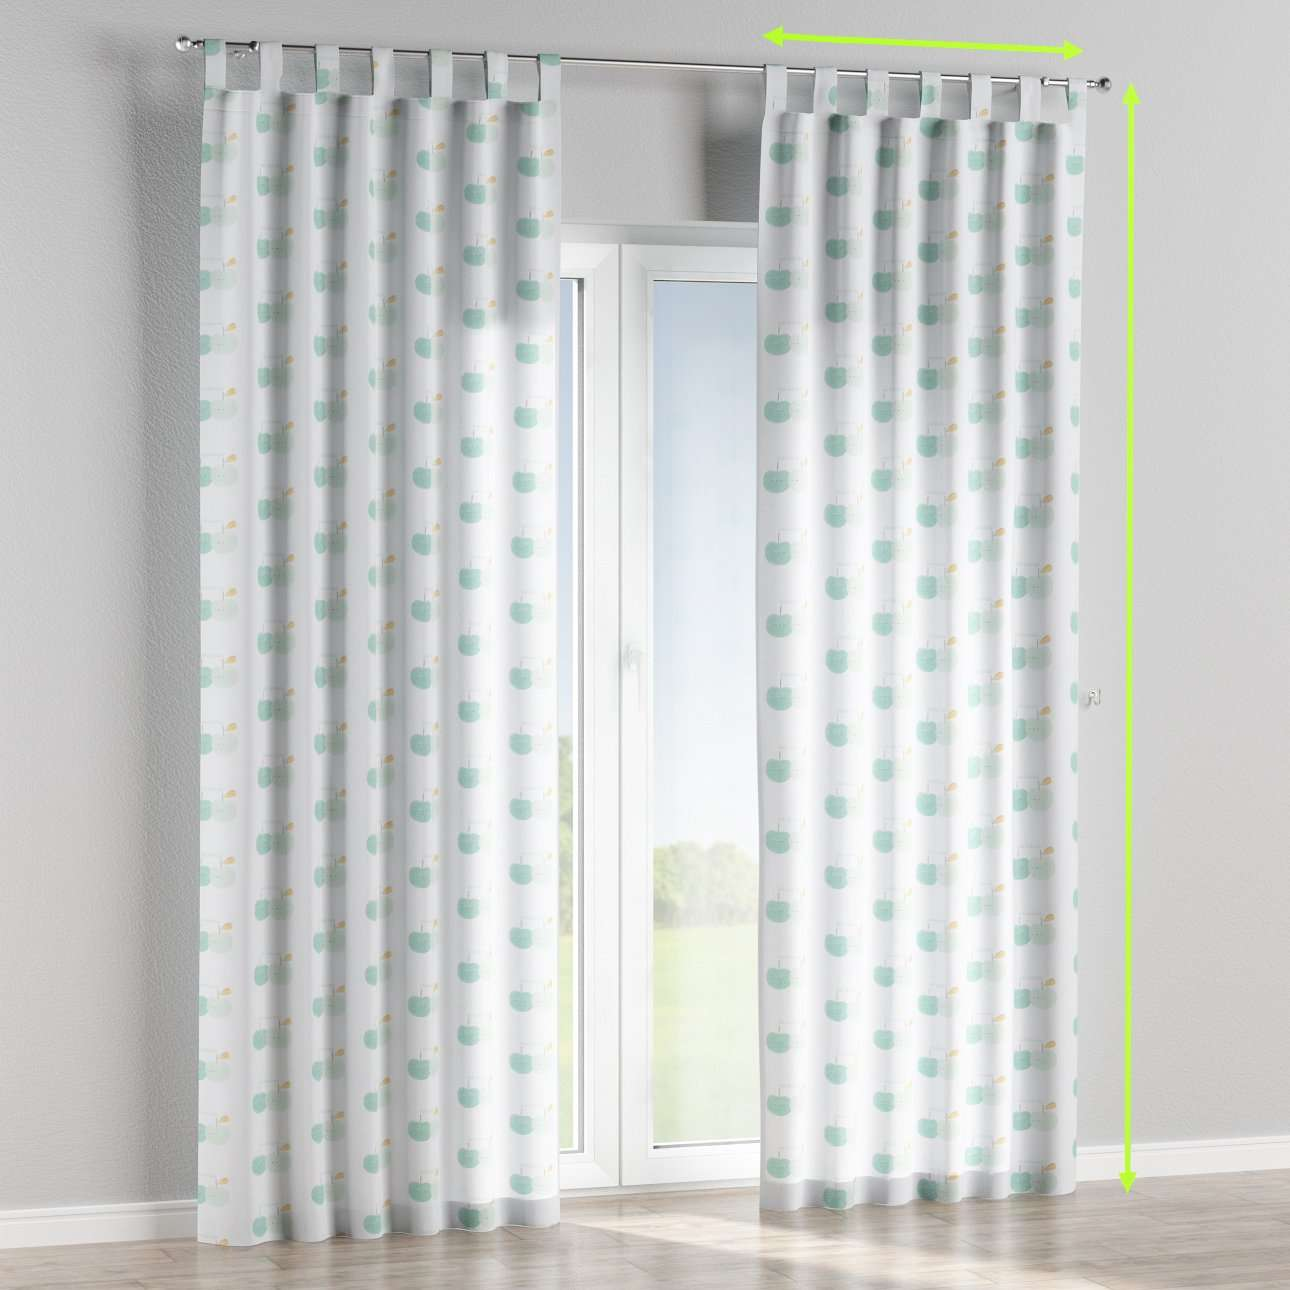 Tab top curtains in collection Apanona, fabric: 151-02